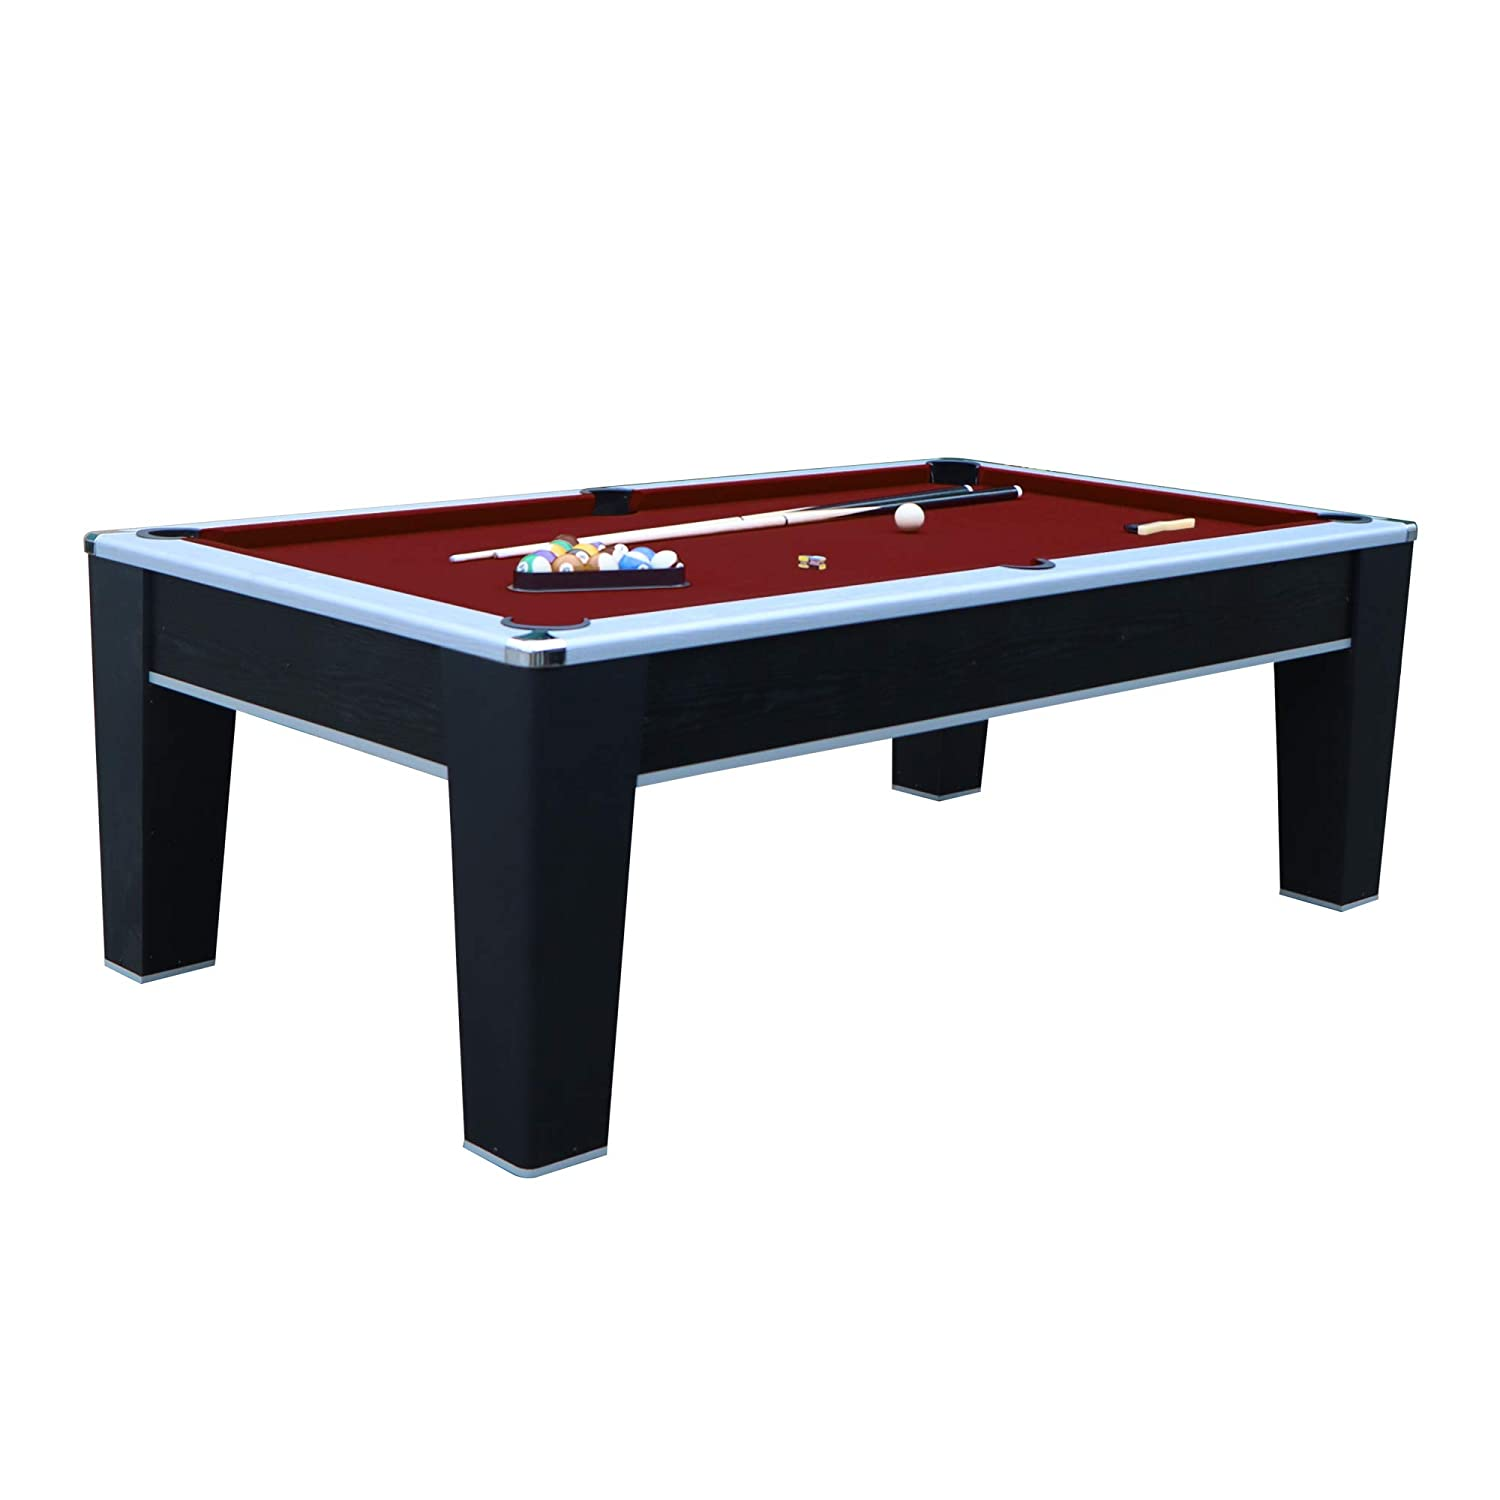 Merveilleux Amazon.com : Hathaway Mirage 7.5u0027 Pool Table, Black/Red : Sports U0026 Outdoors